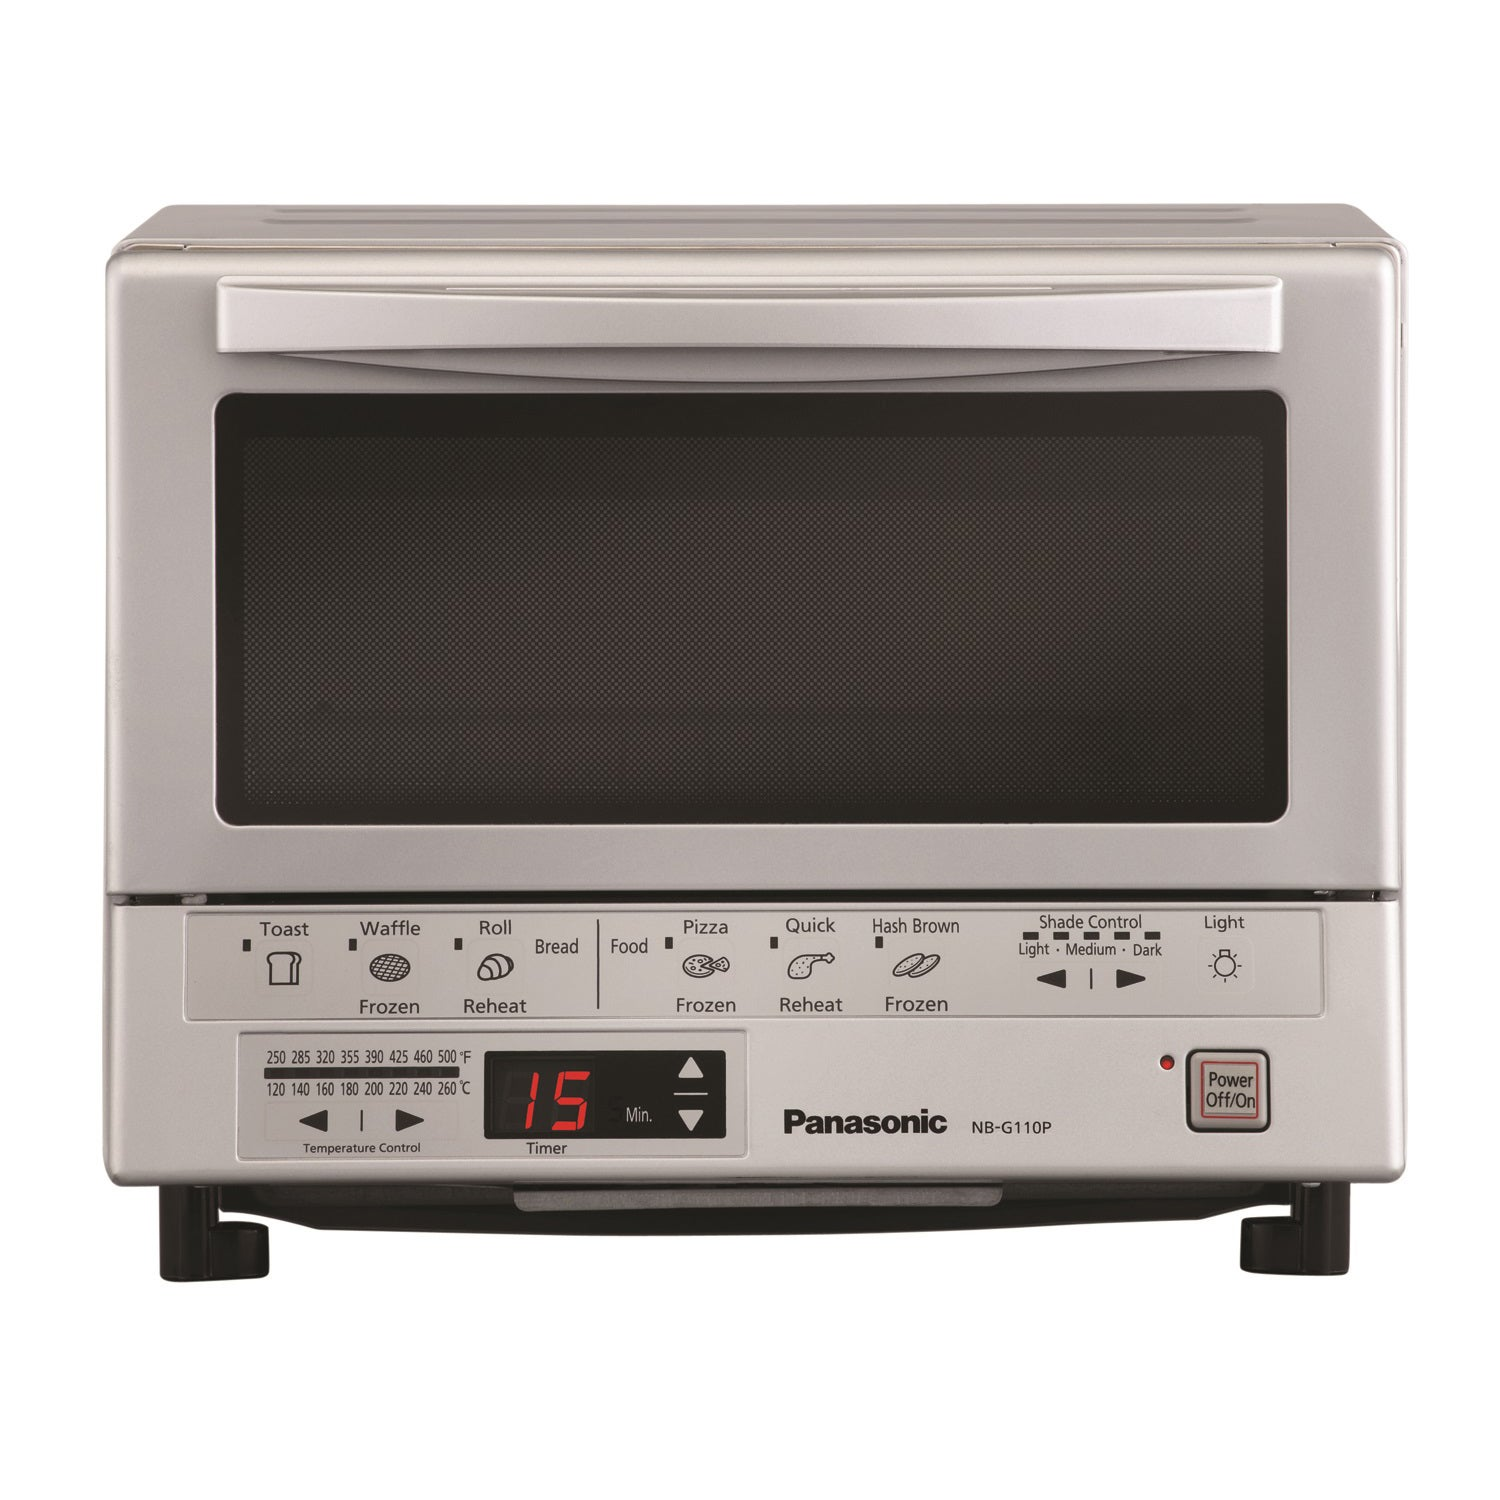 Panasonic NB-G110P FlashXpress Toaster Oven with Double I...